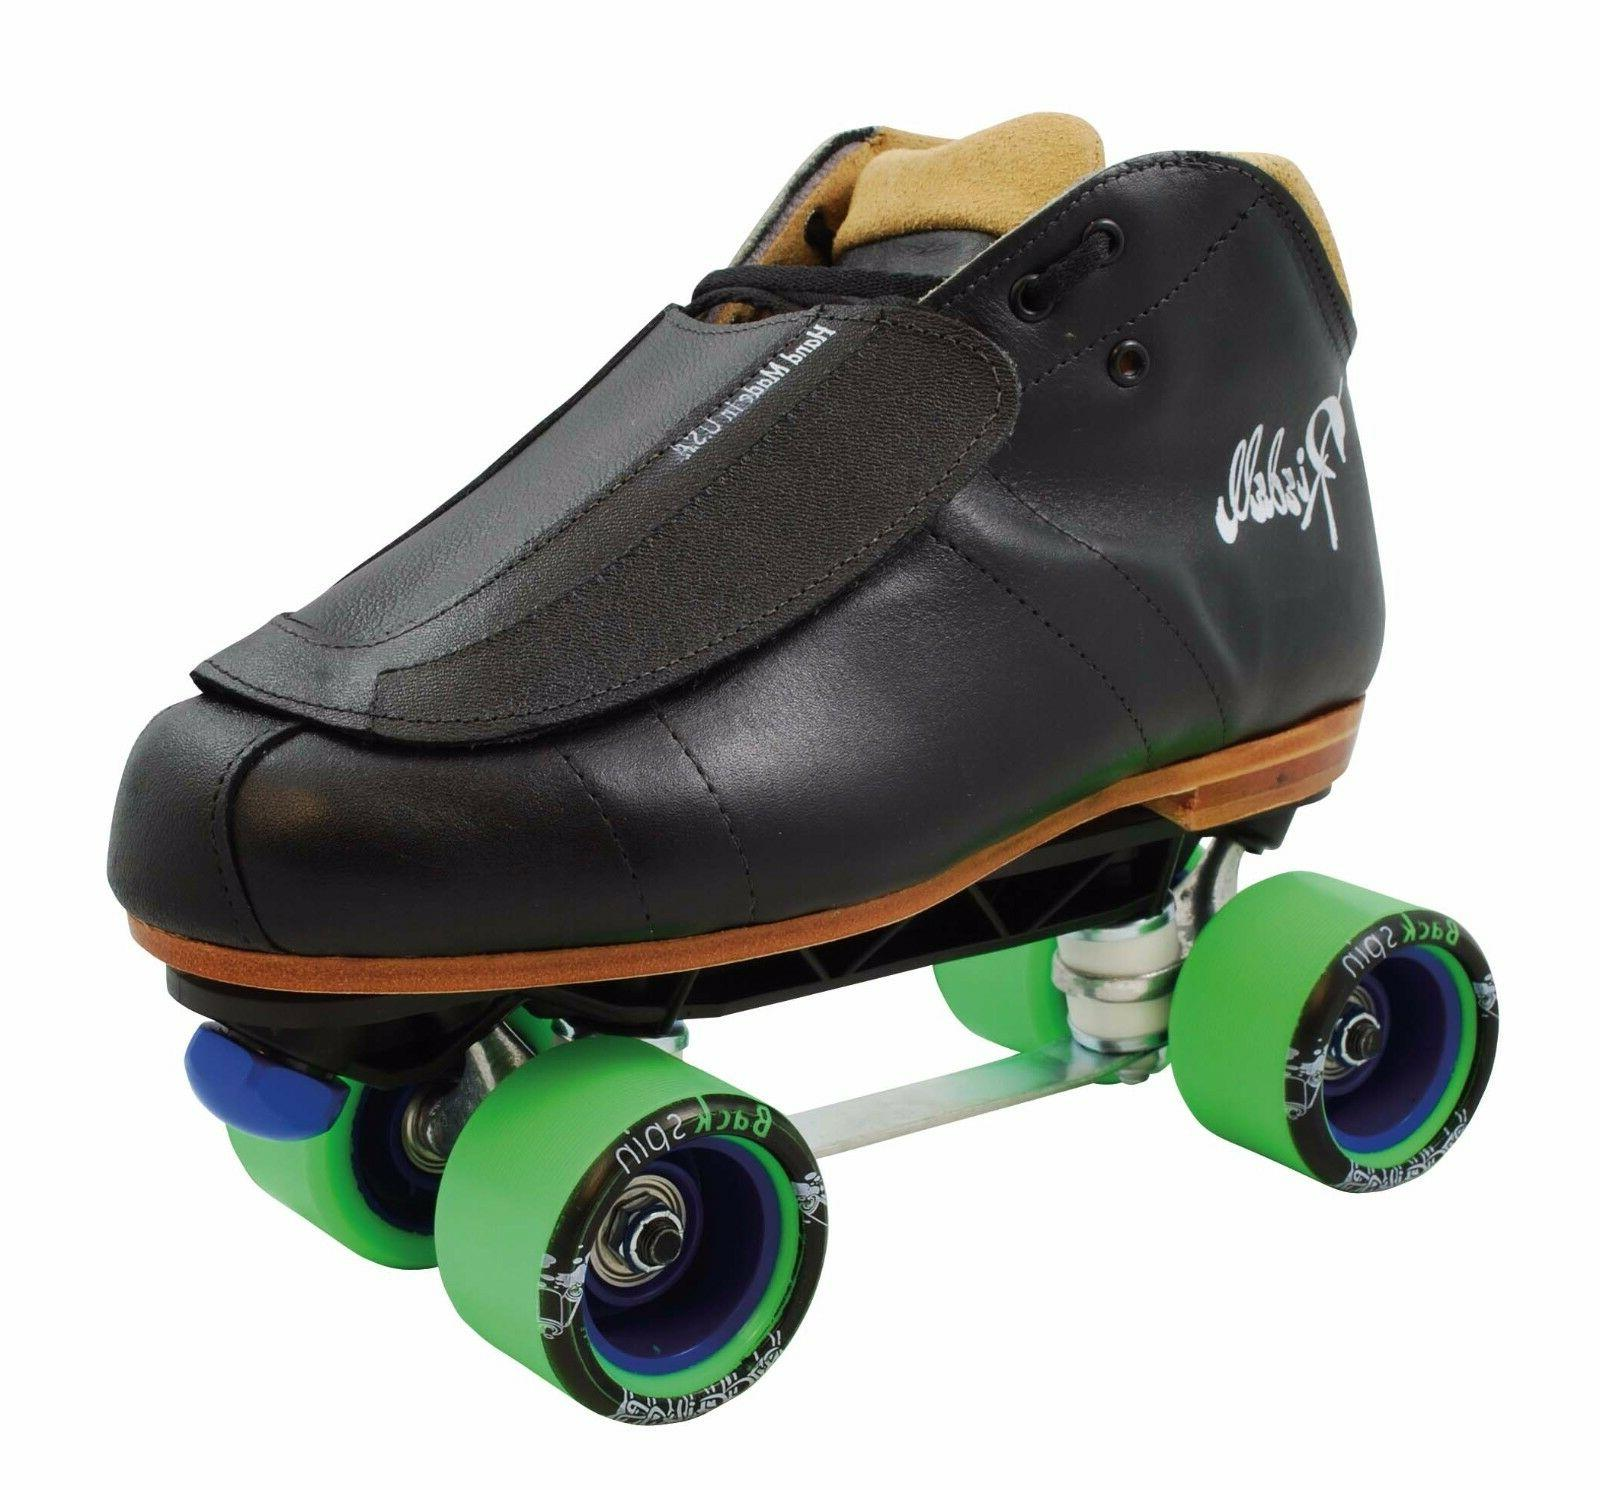 965 sunlite backspin scribble speed skates